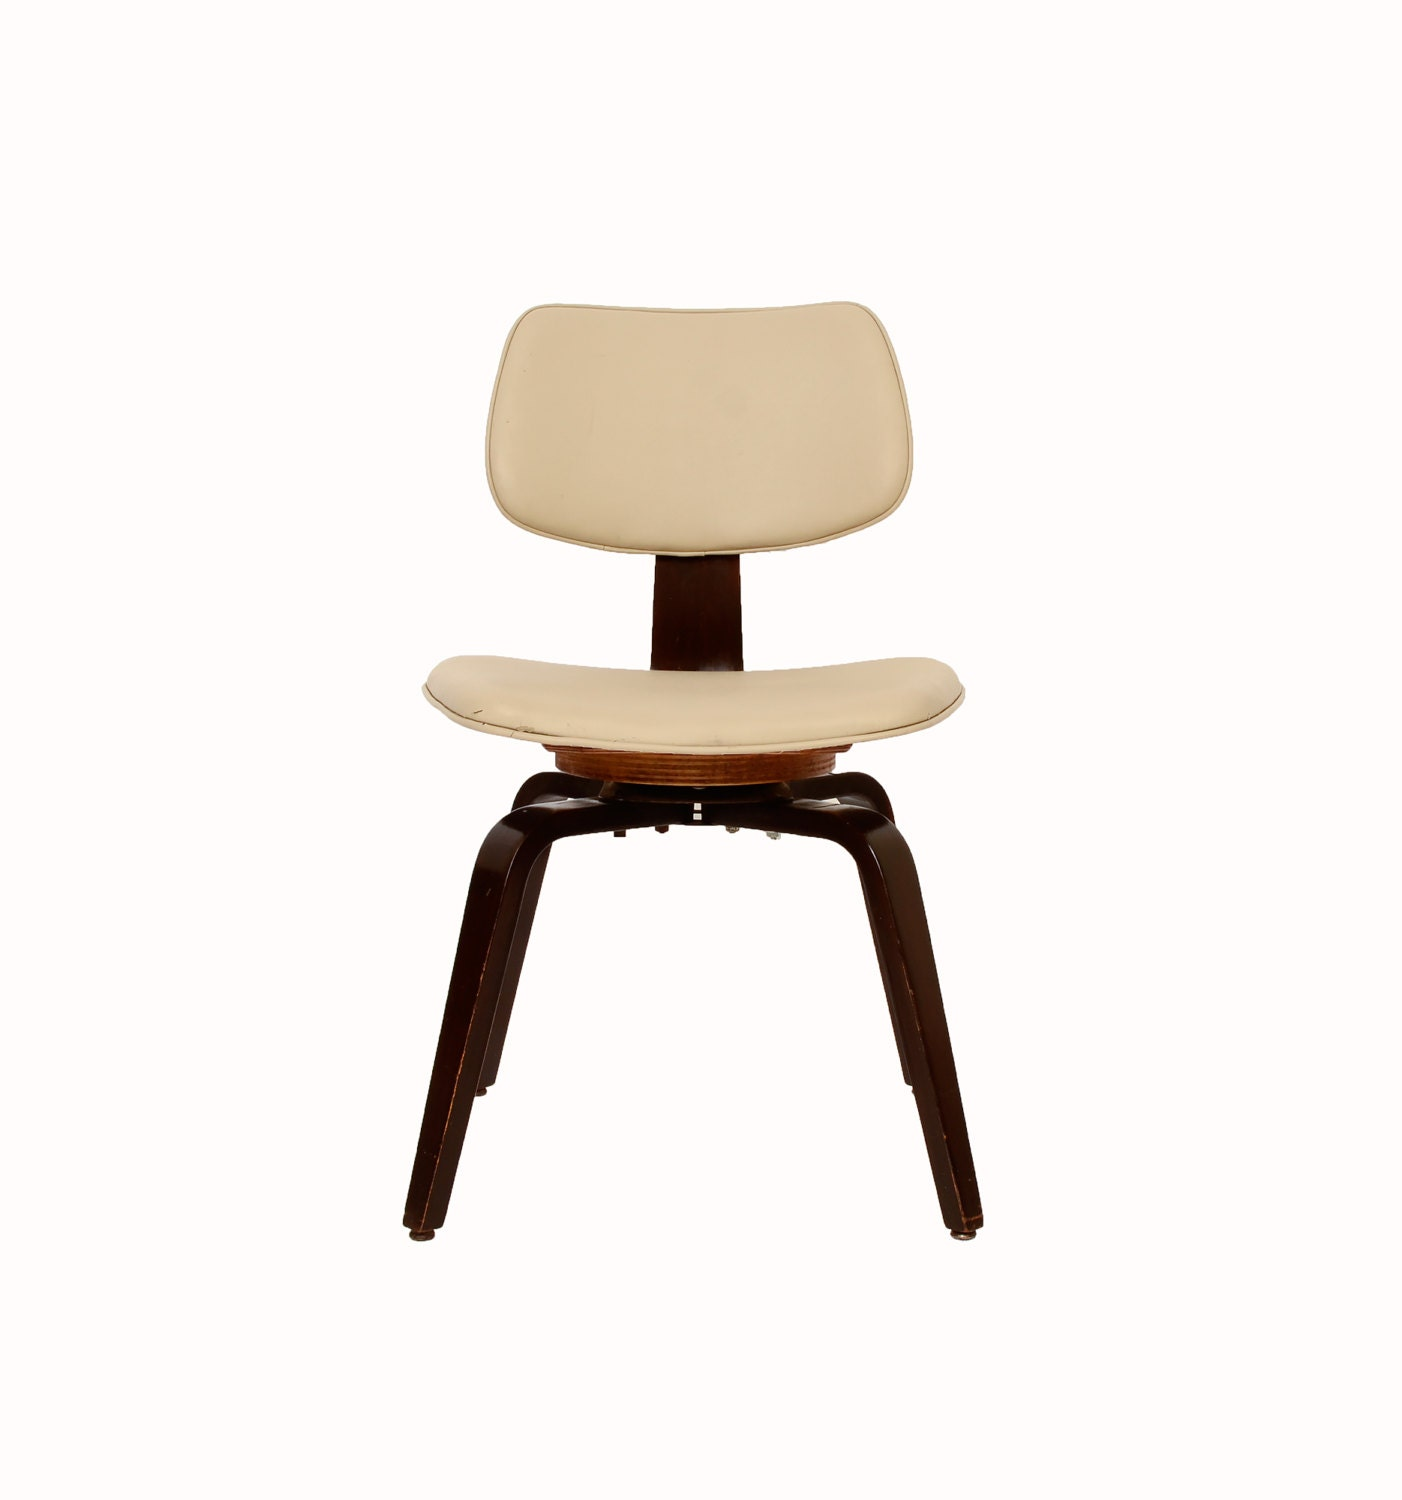 Thonet Chair Swivel Base Office Chair Bent Wood Chair Mid